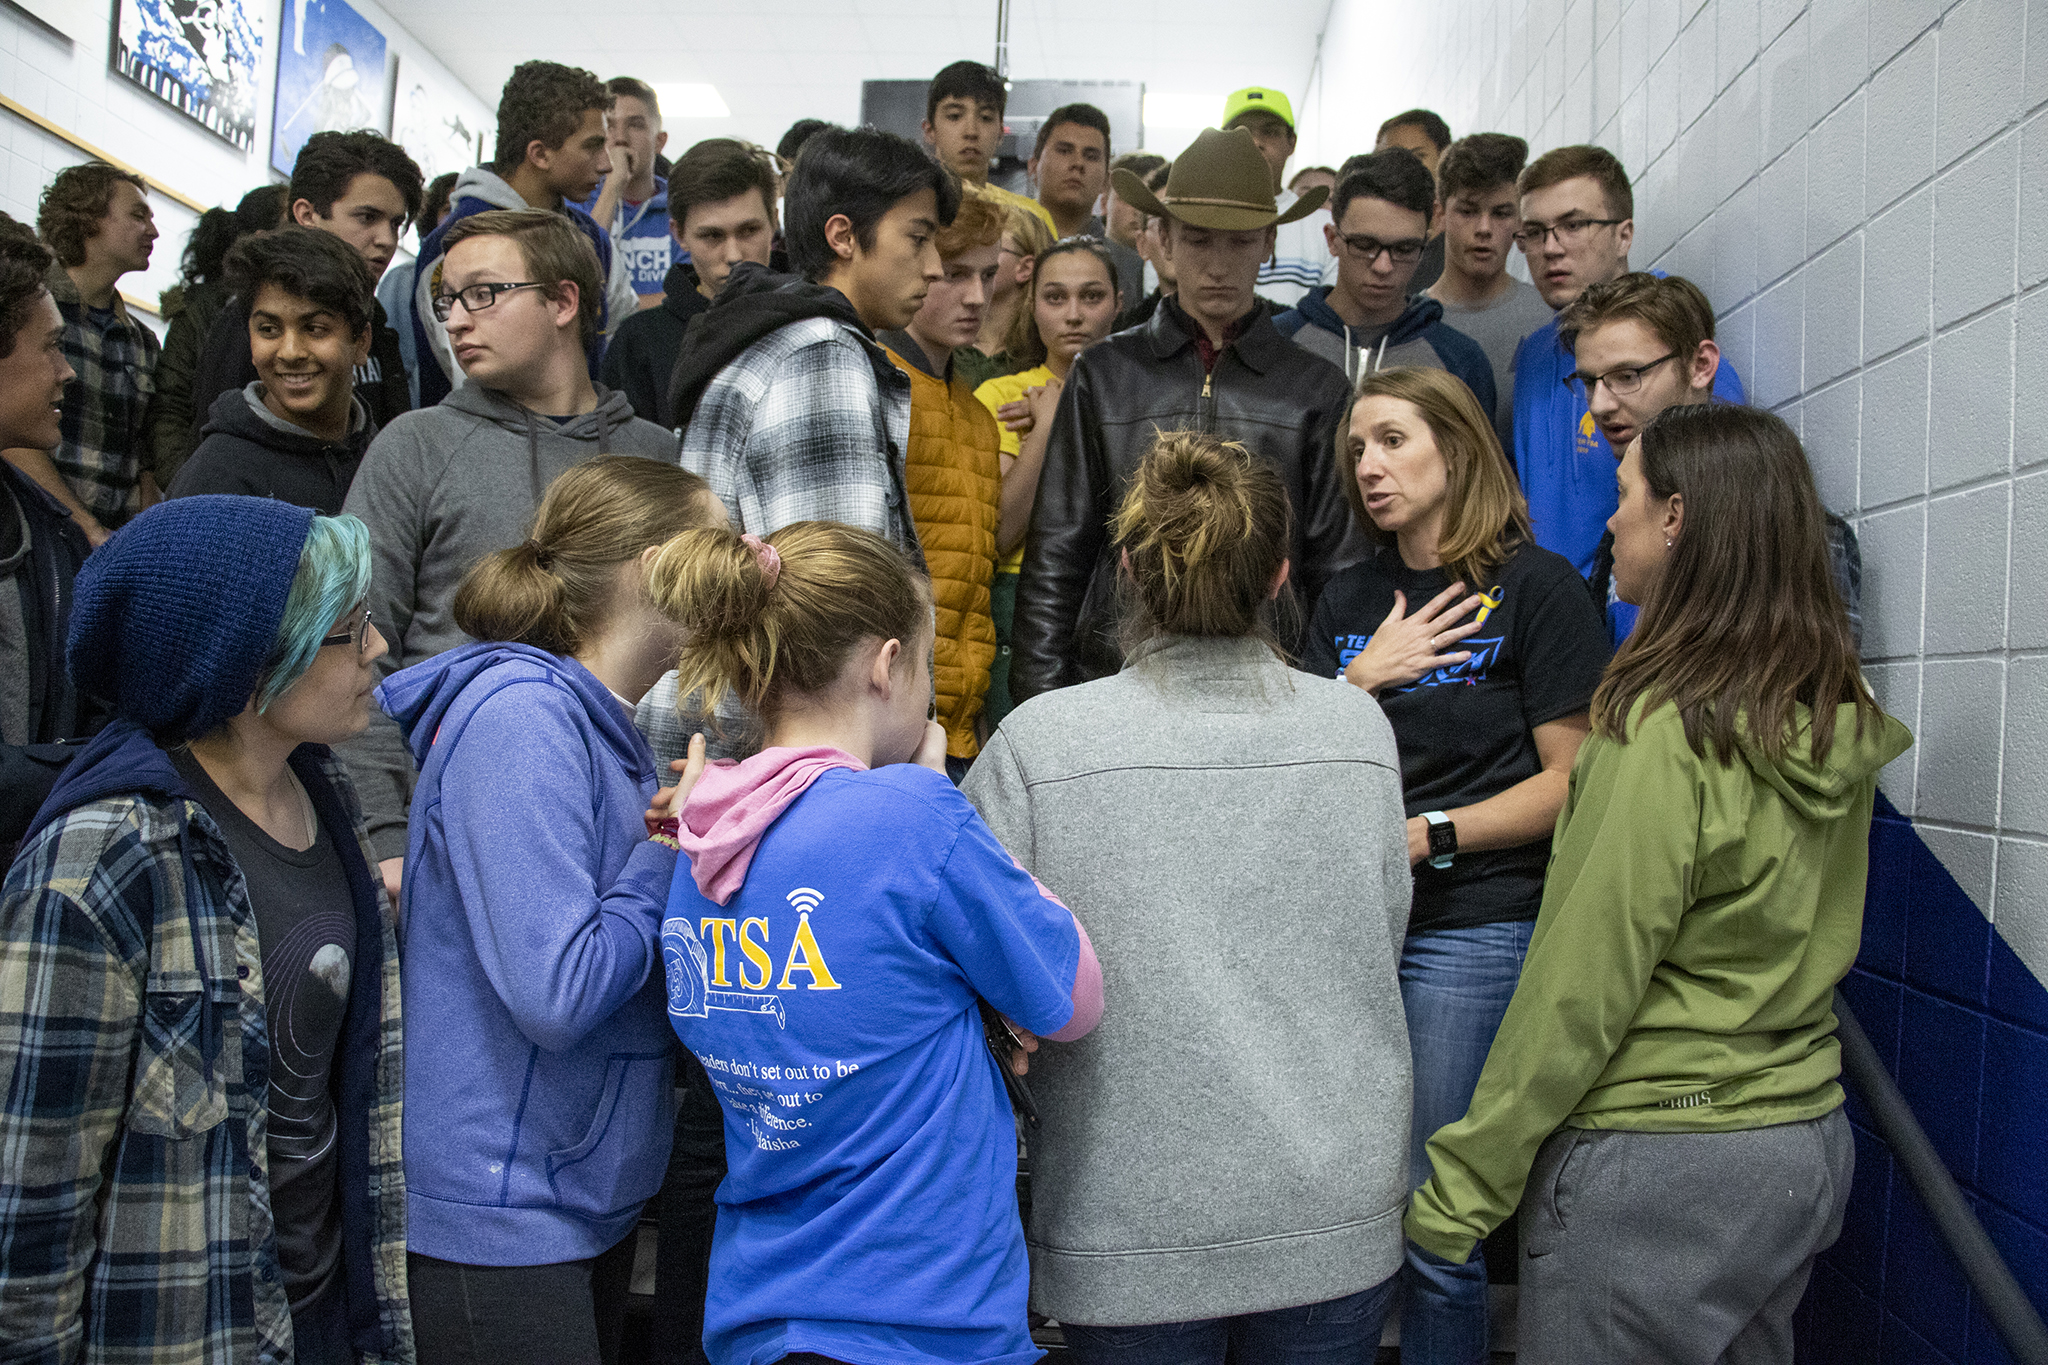 Photo: STEM School Highlands Ranch students meet in the hallway during a vigil at Highlands Ranch High School